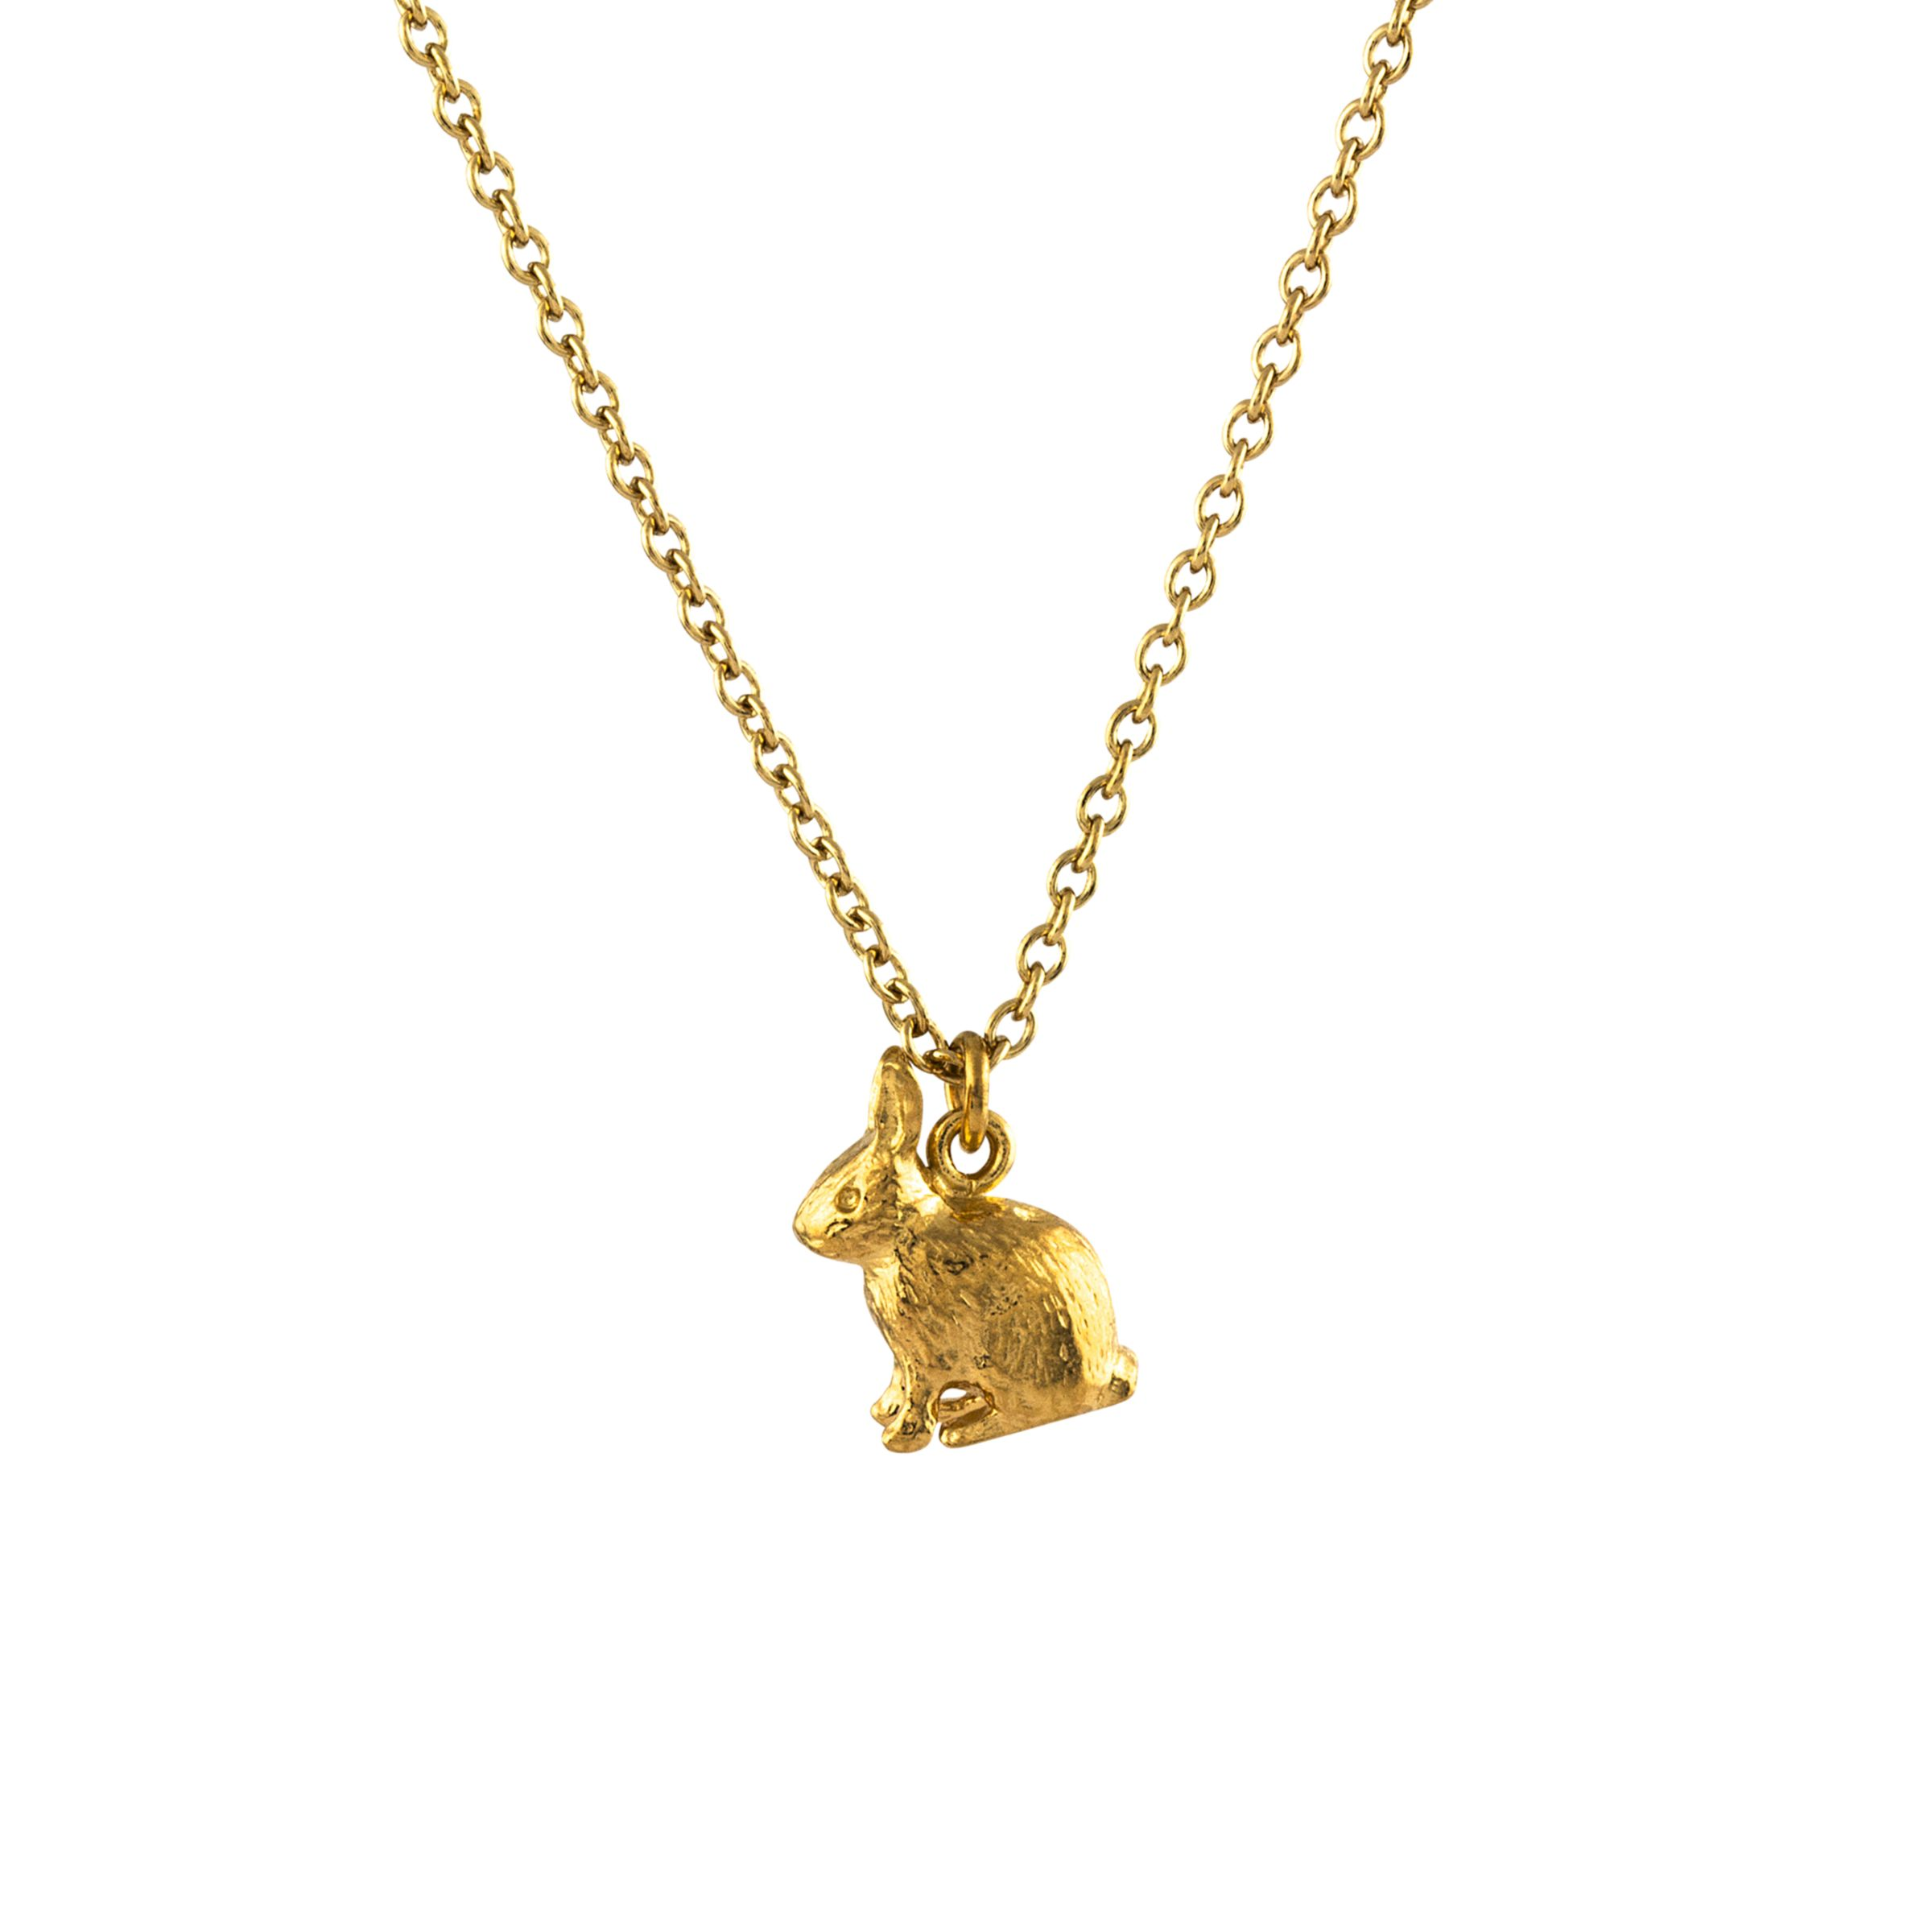 Alex Monroe Alex Monroe 22ct Gold Plated Sterling Silver Sitting Bunny Pendant Necklace, Gold